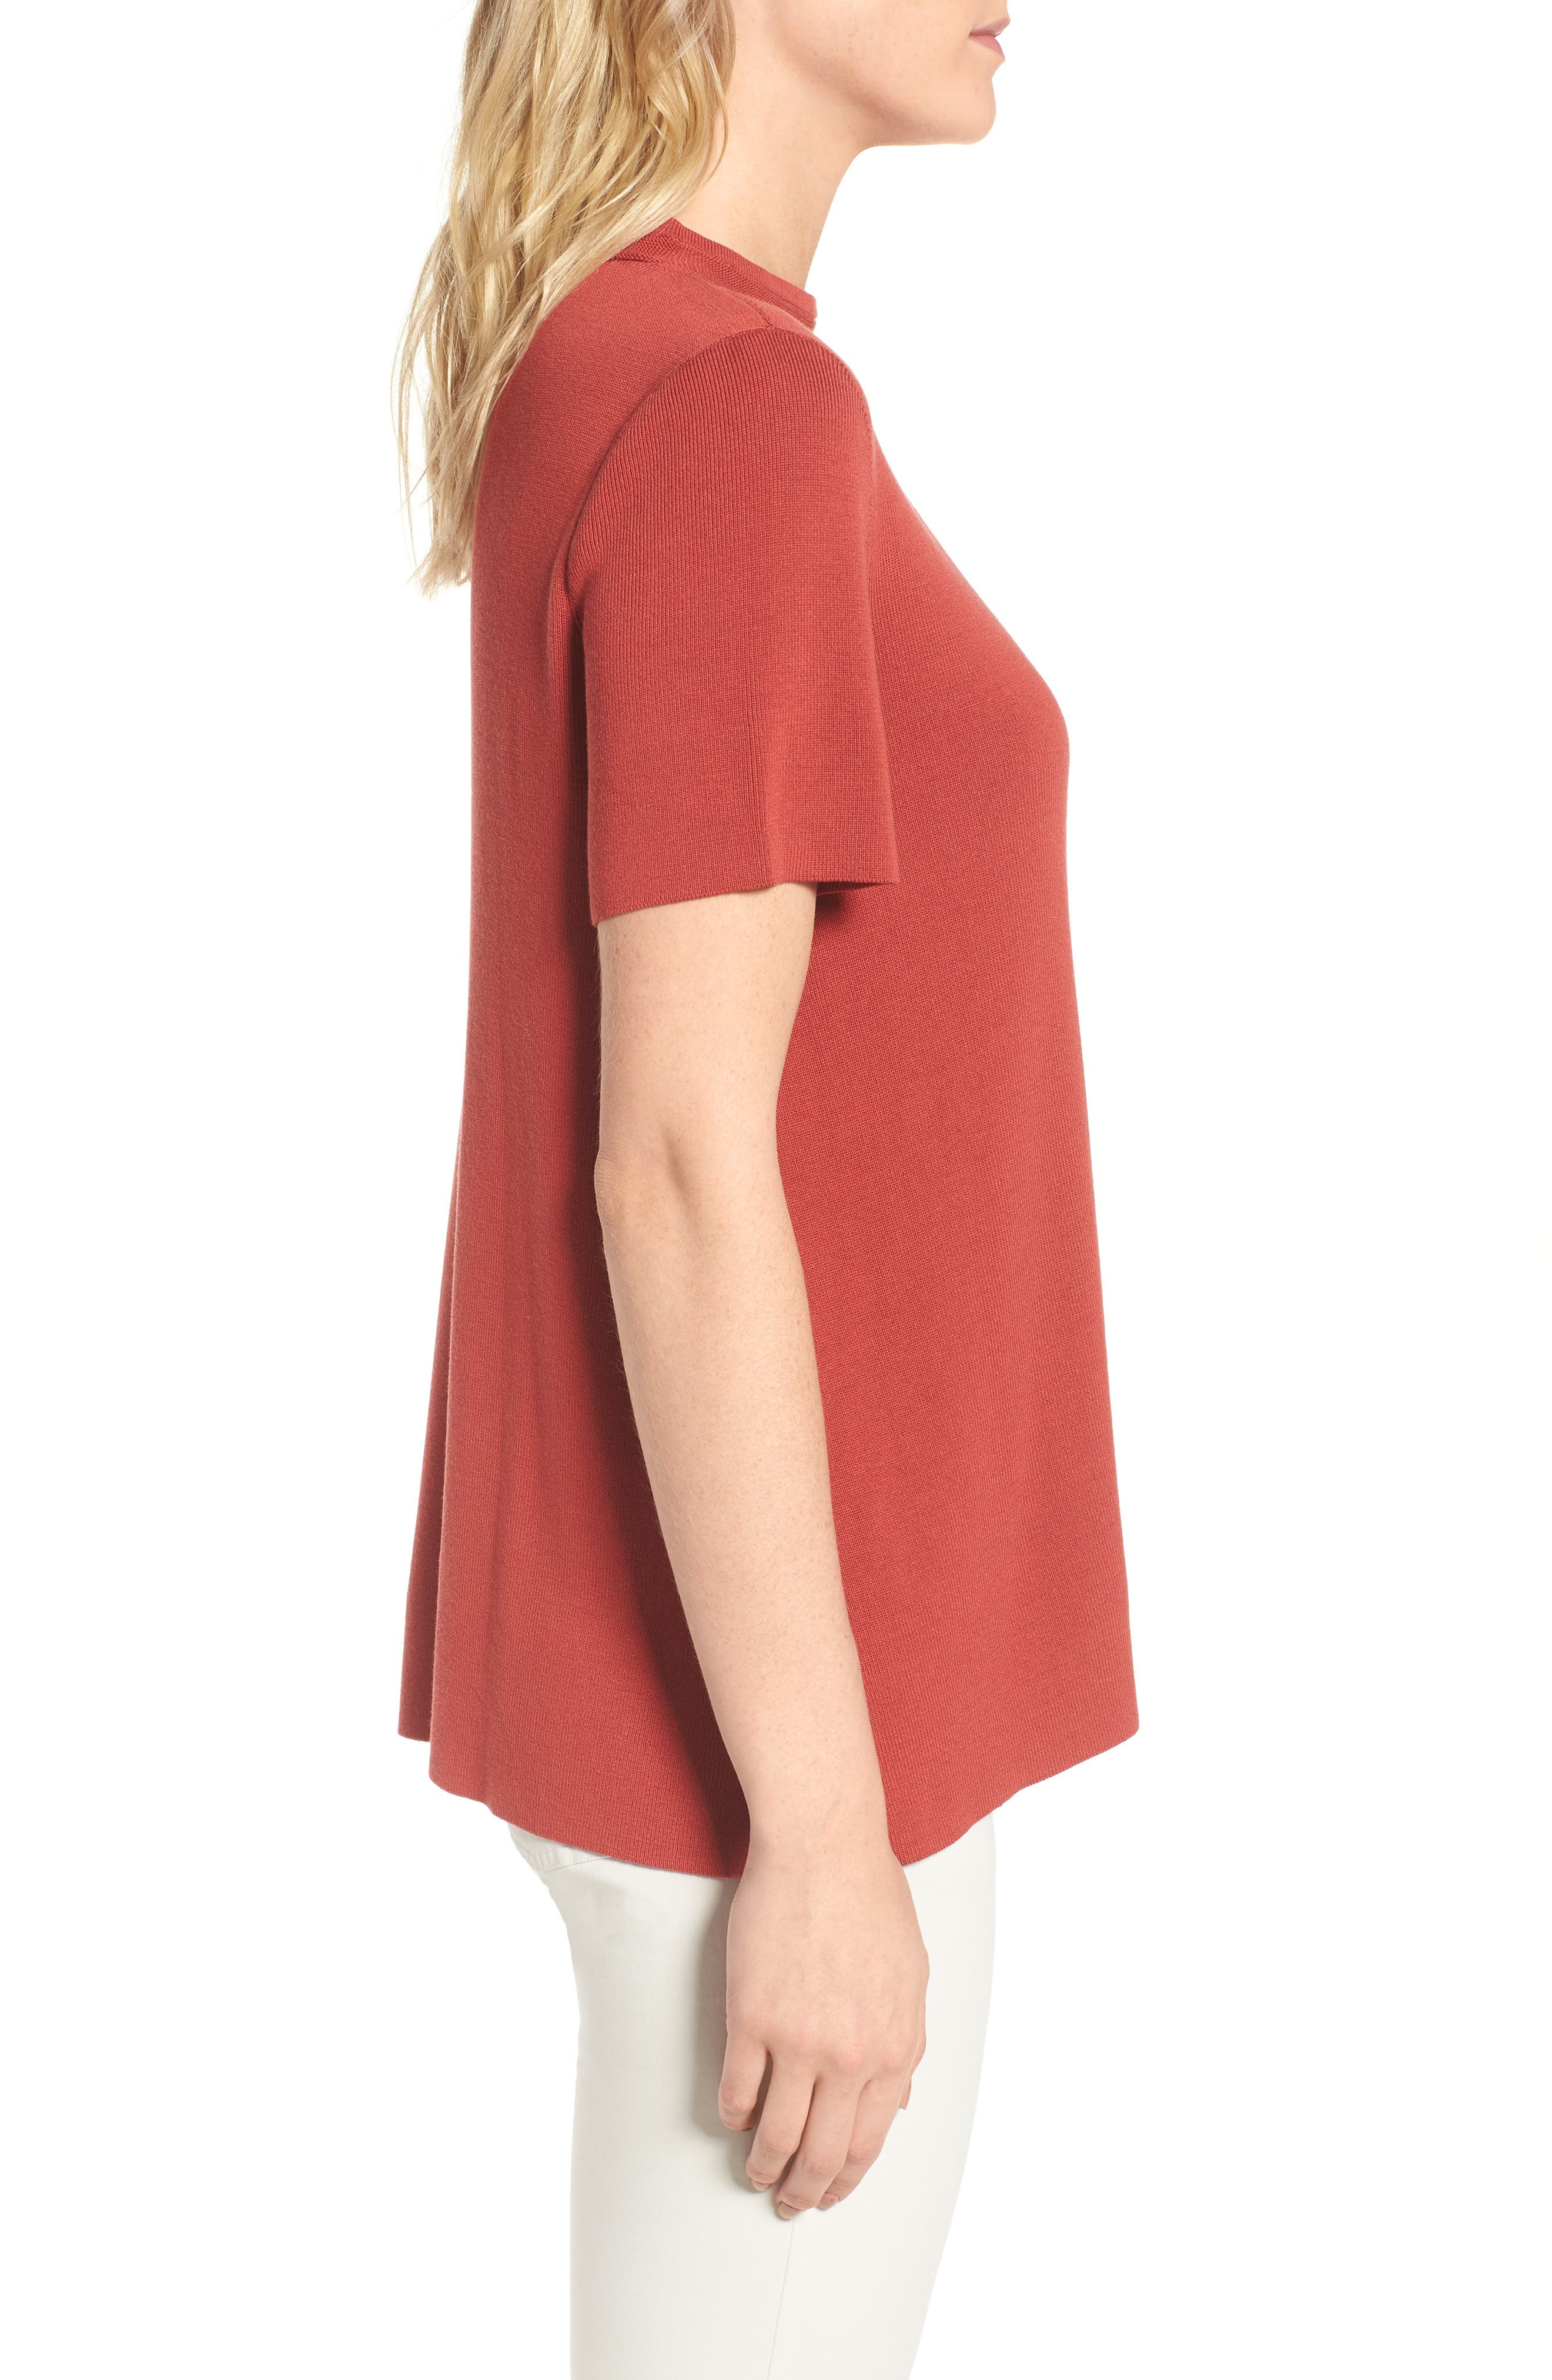 Tencel<sup>®</sup> Lyocell Knit Sweater,                             Alternate thumbnail 3, color,                             Coral Rose